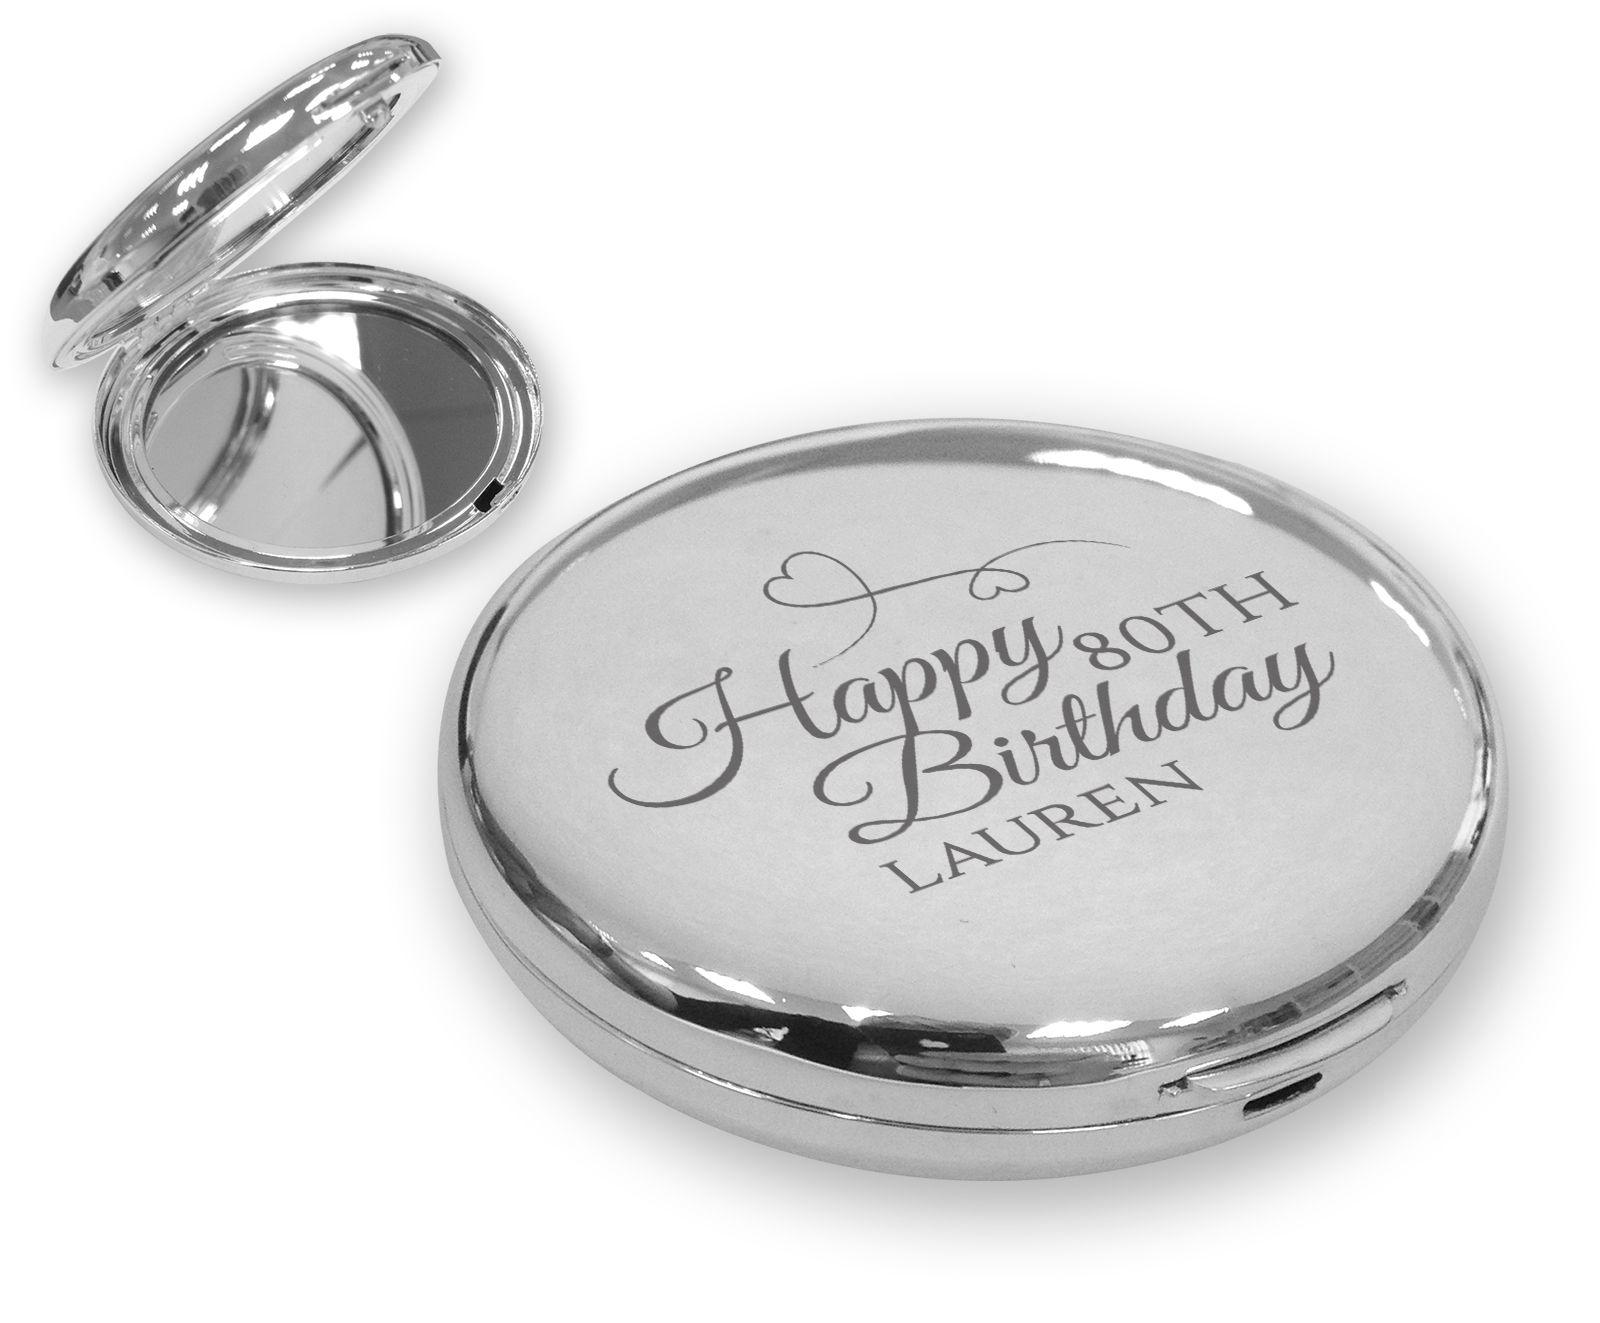 80TH BIRTHDAY compact mirror gift idea